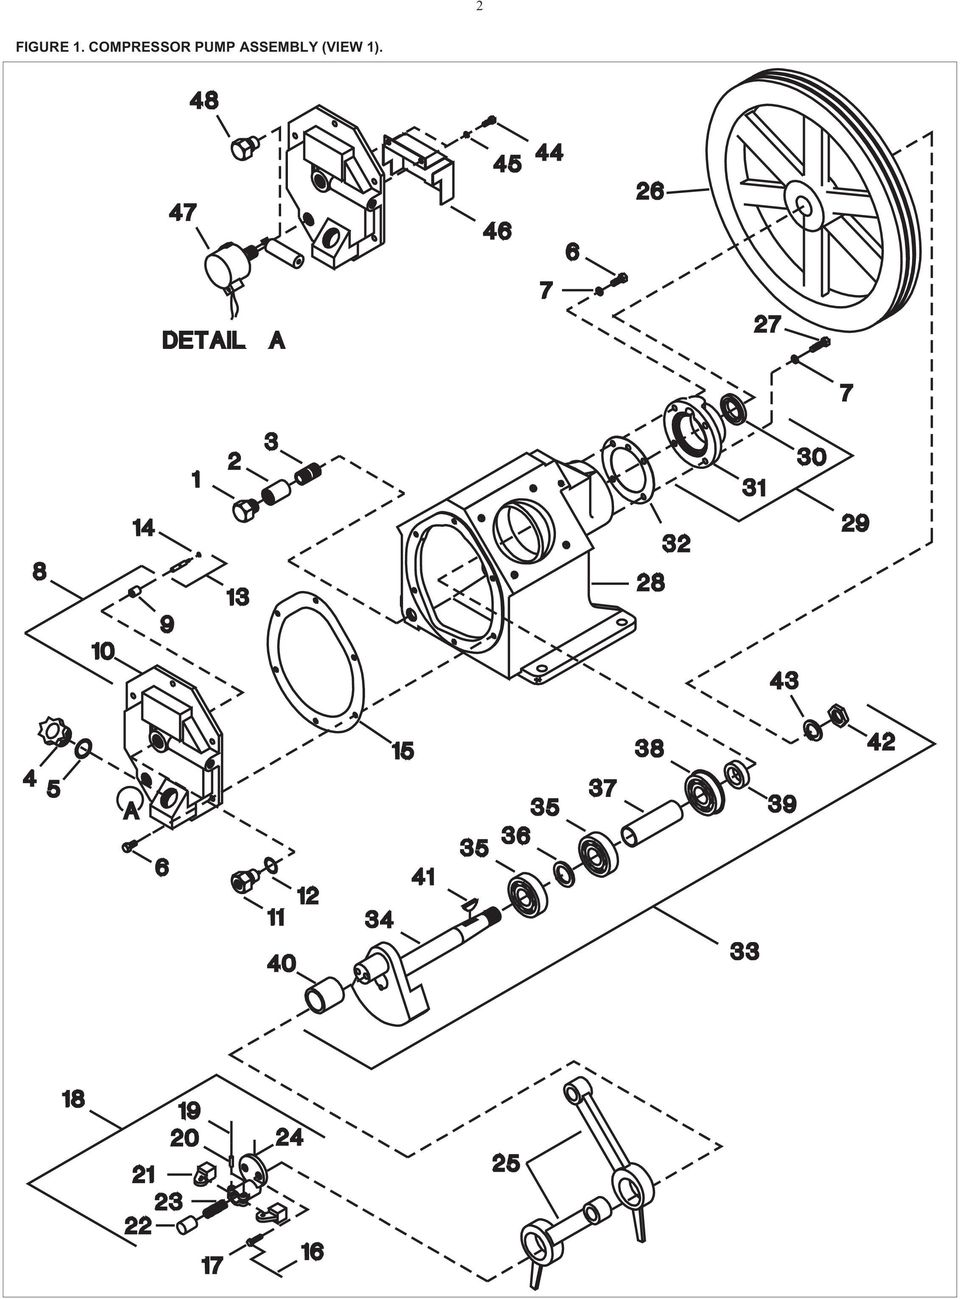 Wiring Diagram For 2 Doorbells likewise Hot Water Tank Drain Procedure together with Carrier Mini Split System Wiring Diagram also Ingersoll Rand 2545 Parts Manual further Home Energy Monitoring Surprises Malfunctions And Fixes. on air compressor oil burner